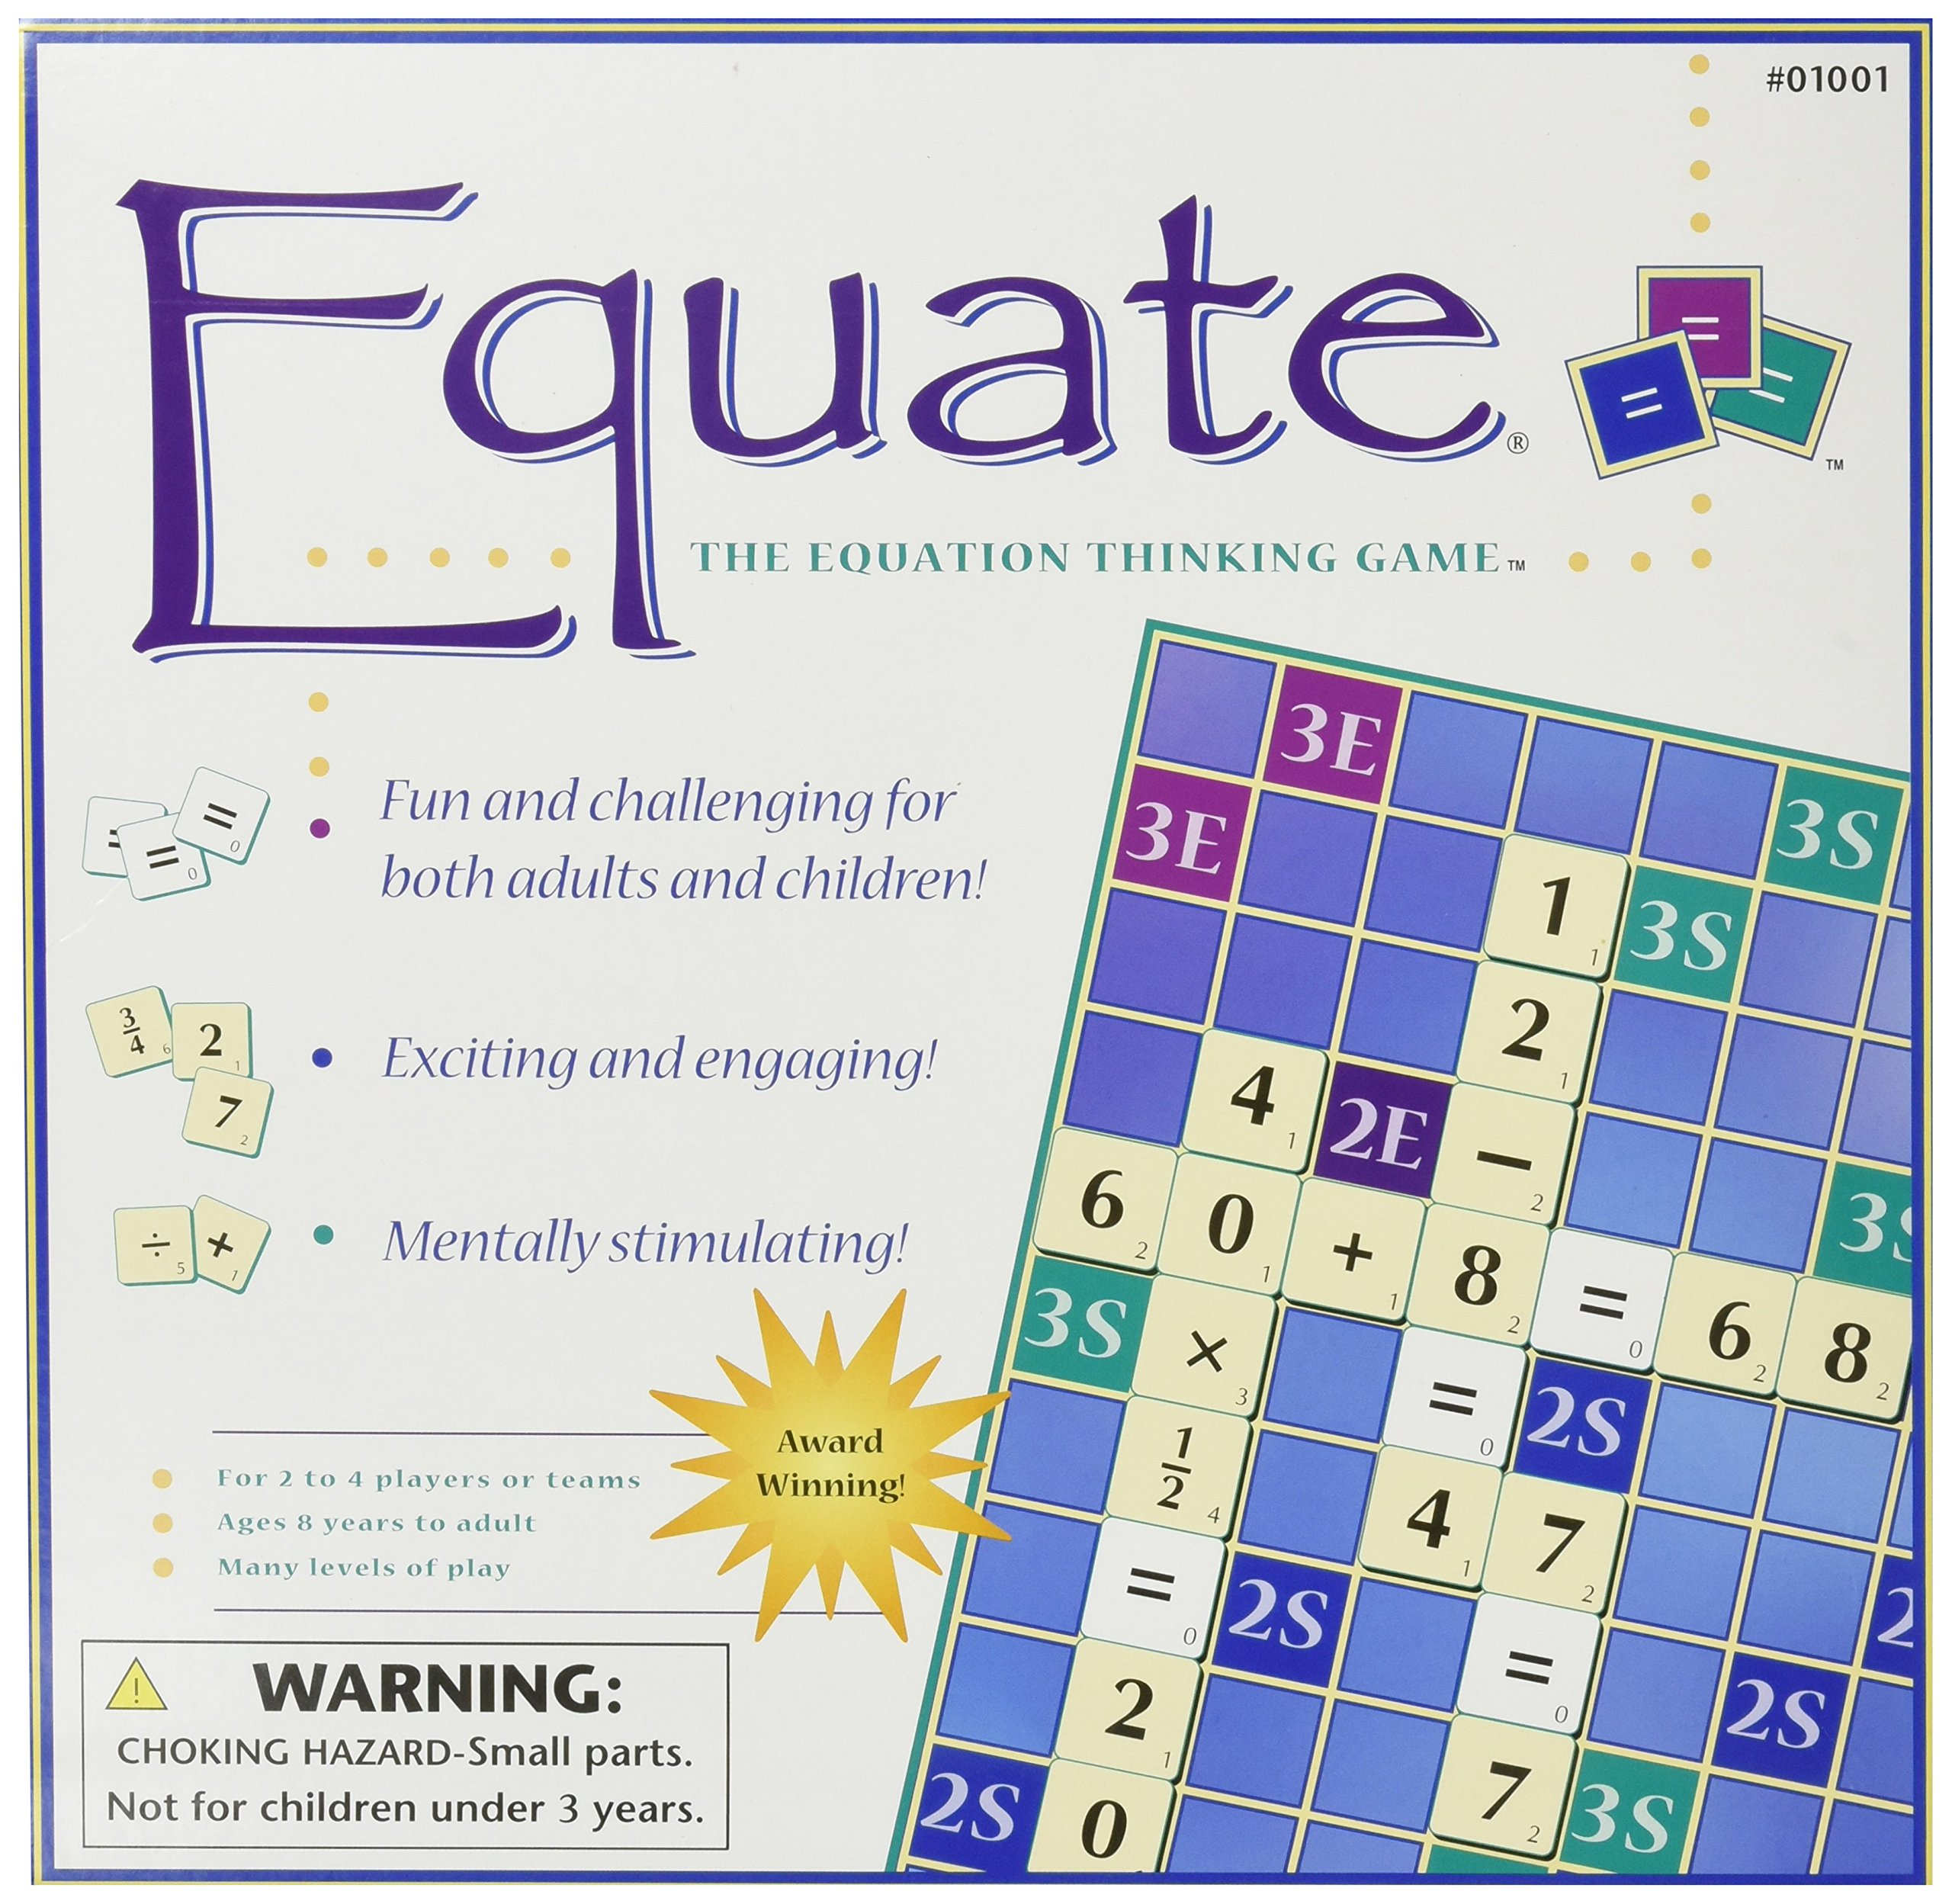 Check Out EquationsProducts On Amazon!